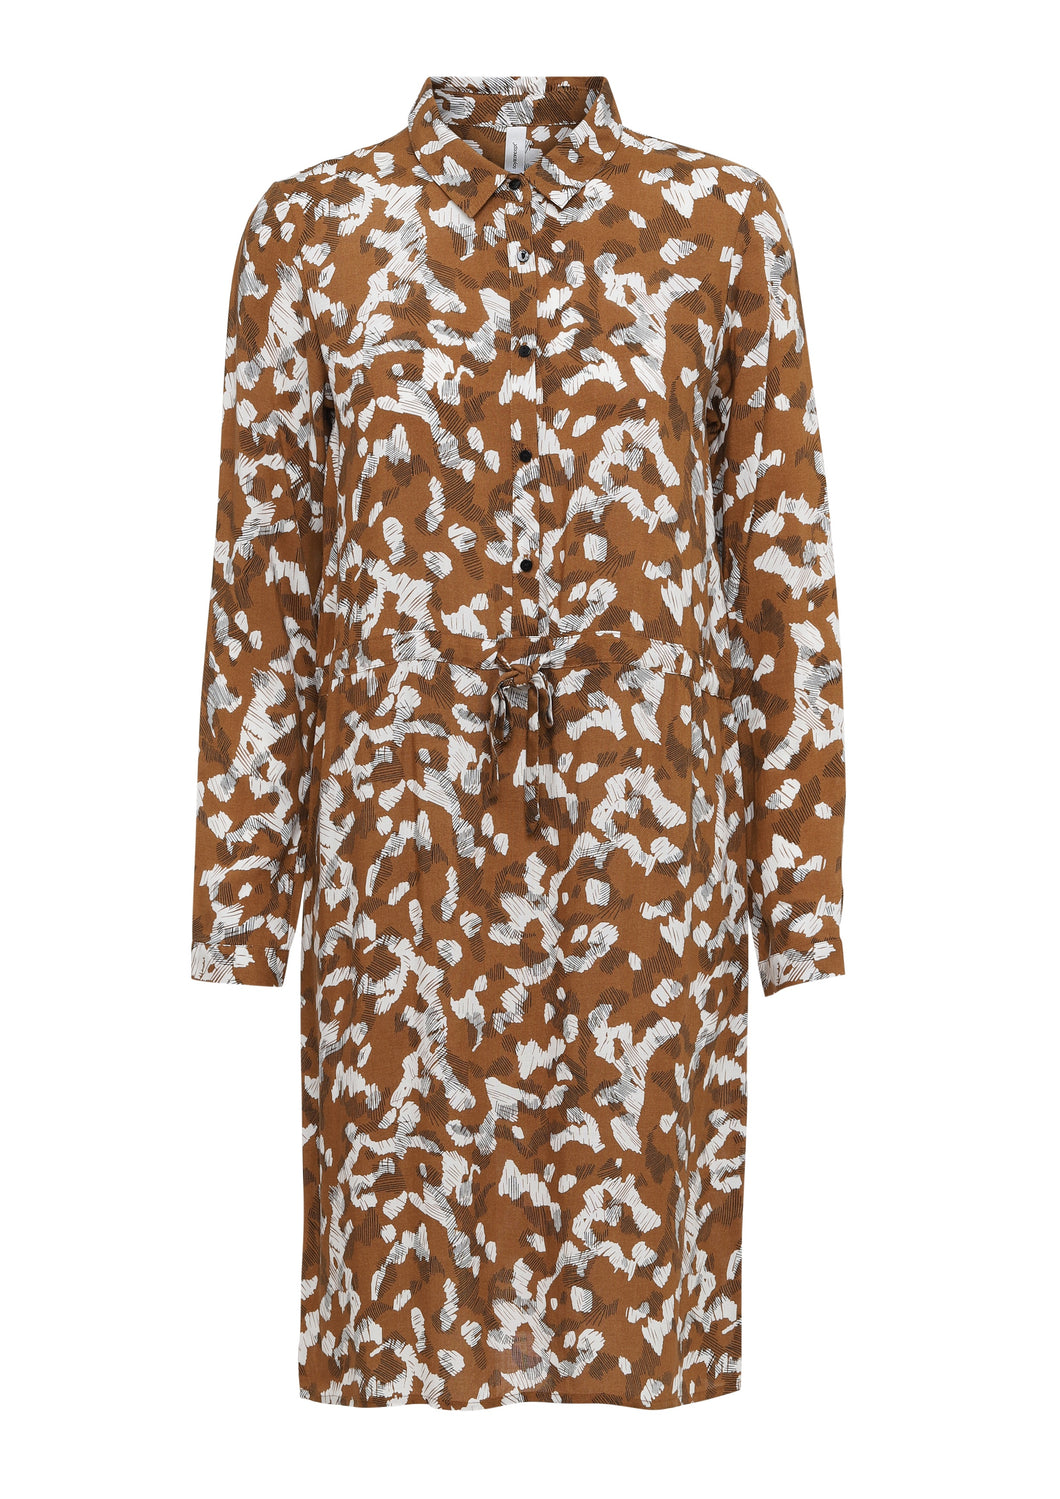 Soyaconcept Sarkia Print Dress - Sands Boutique clothing and gifts